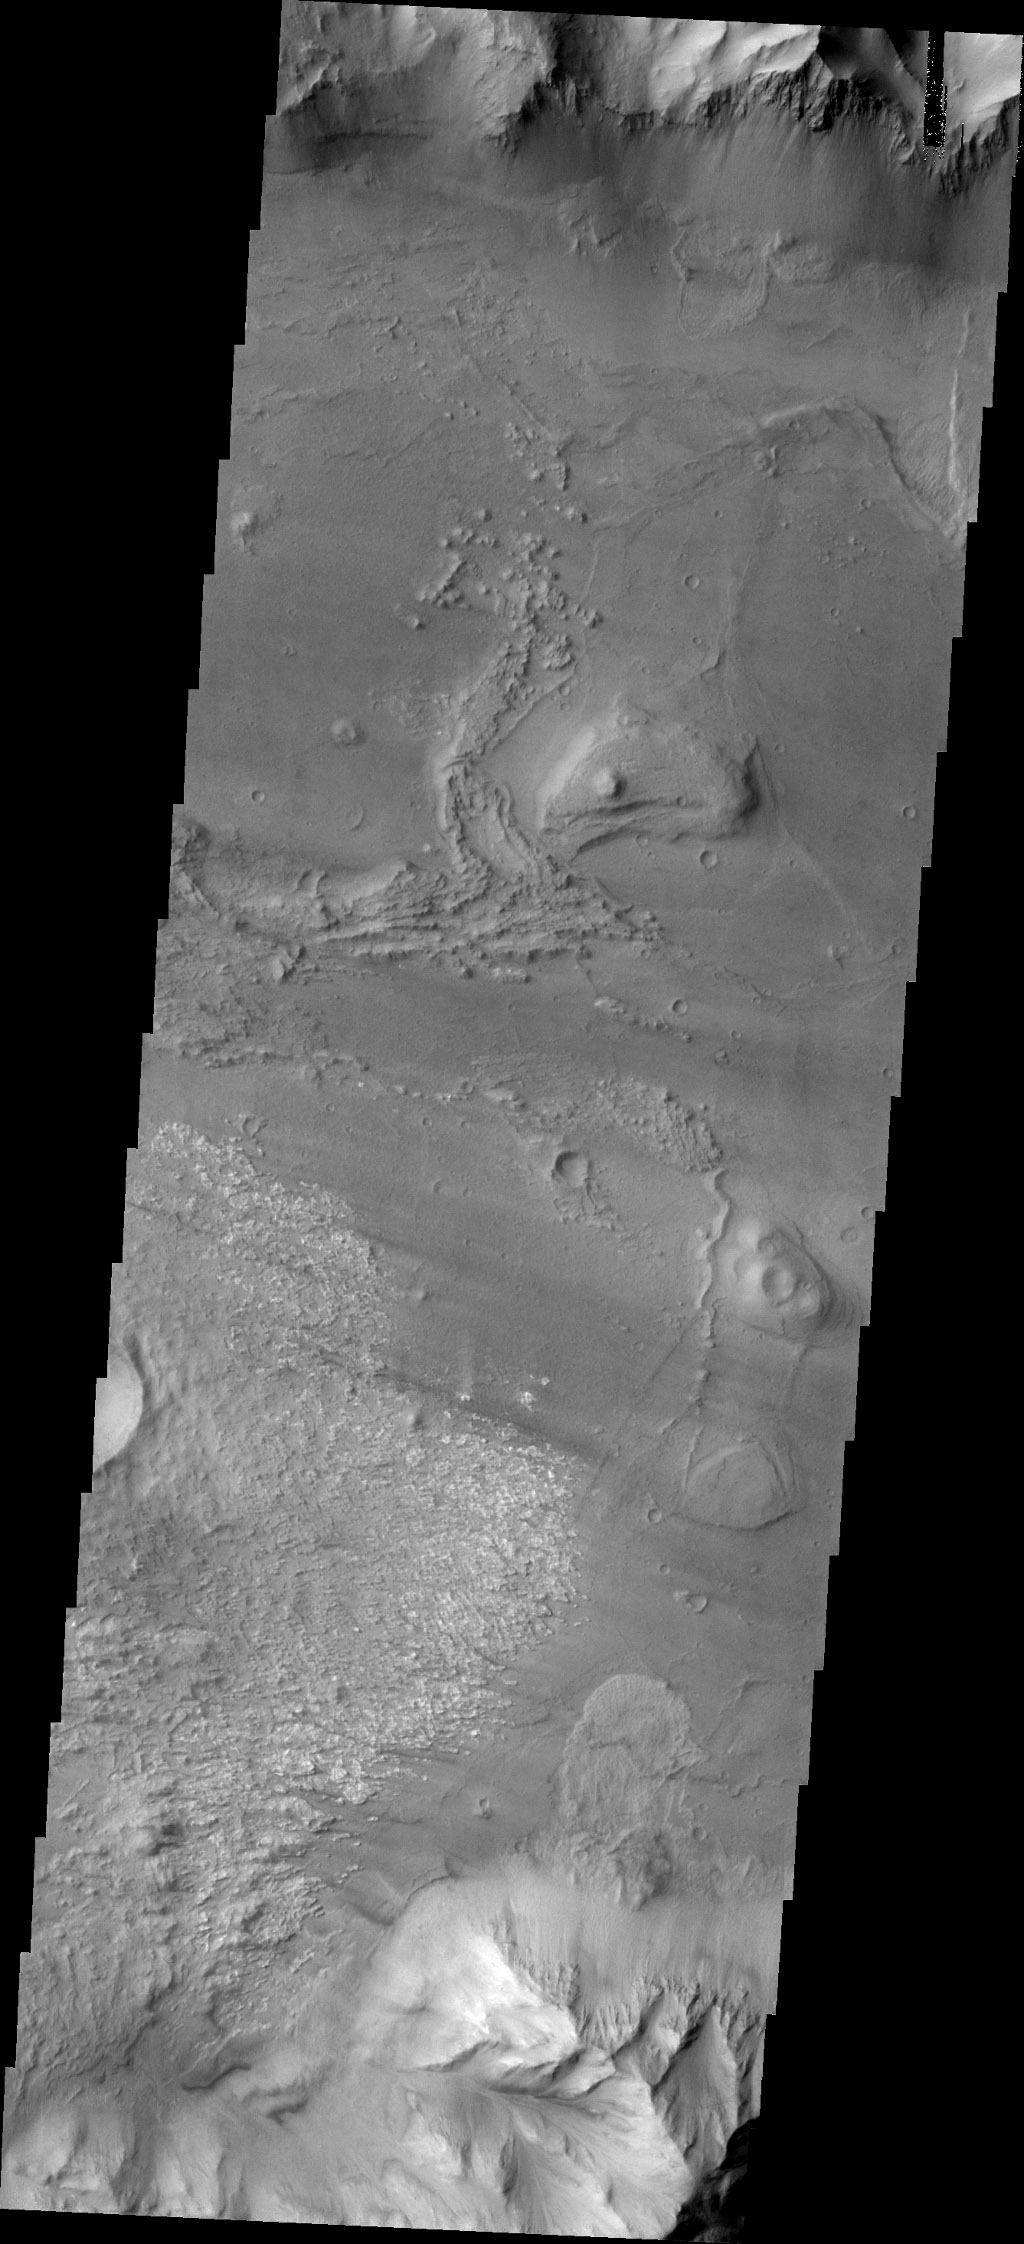 Coprates Chasma is one of the numerous canyons that make up Valles Marineris. This image from NASA's 2001 Mars Odyssey spacecraft is located in central Coprates Chasma. In this view, there is a landslide deposit at the bottom of the image.